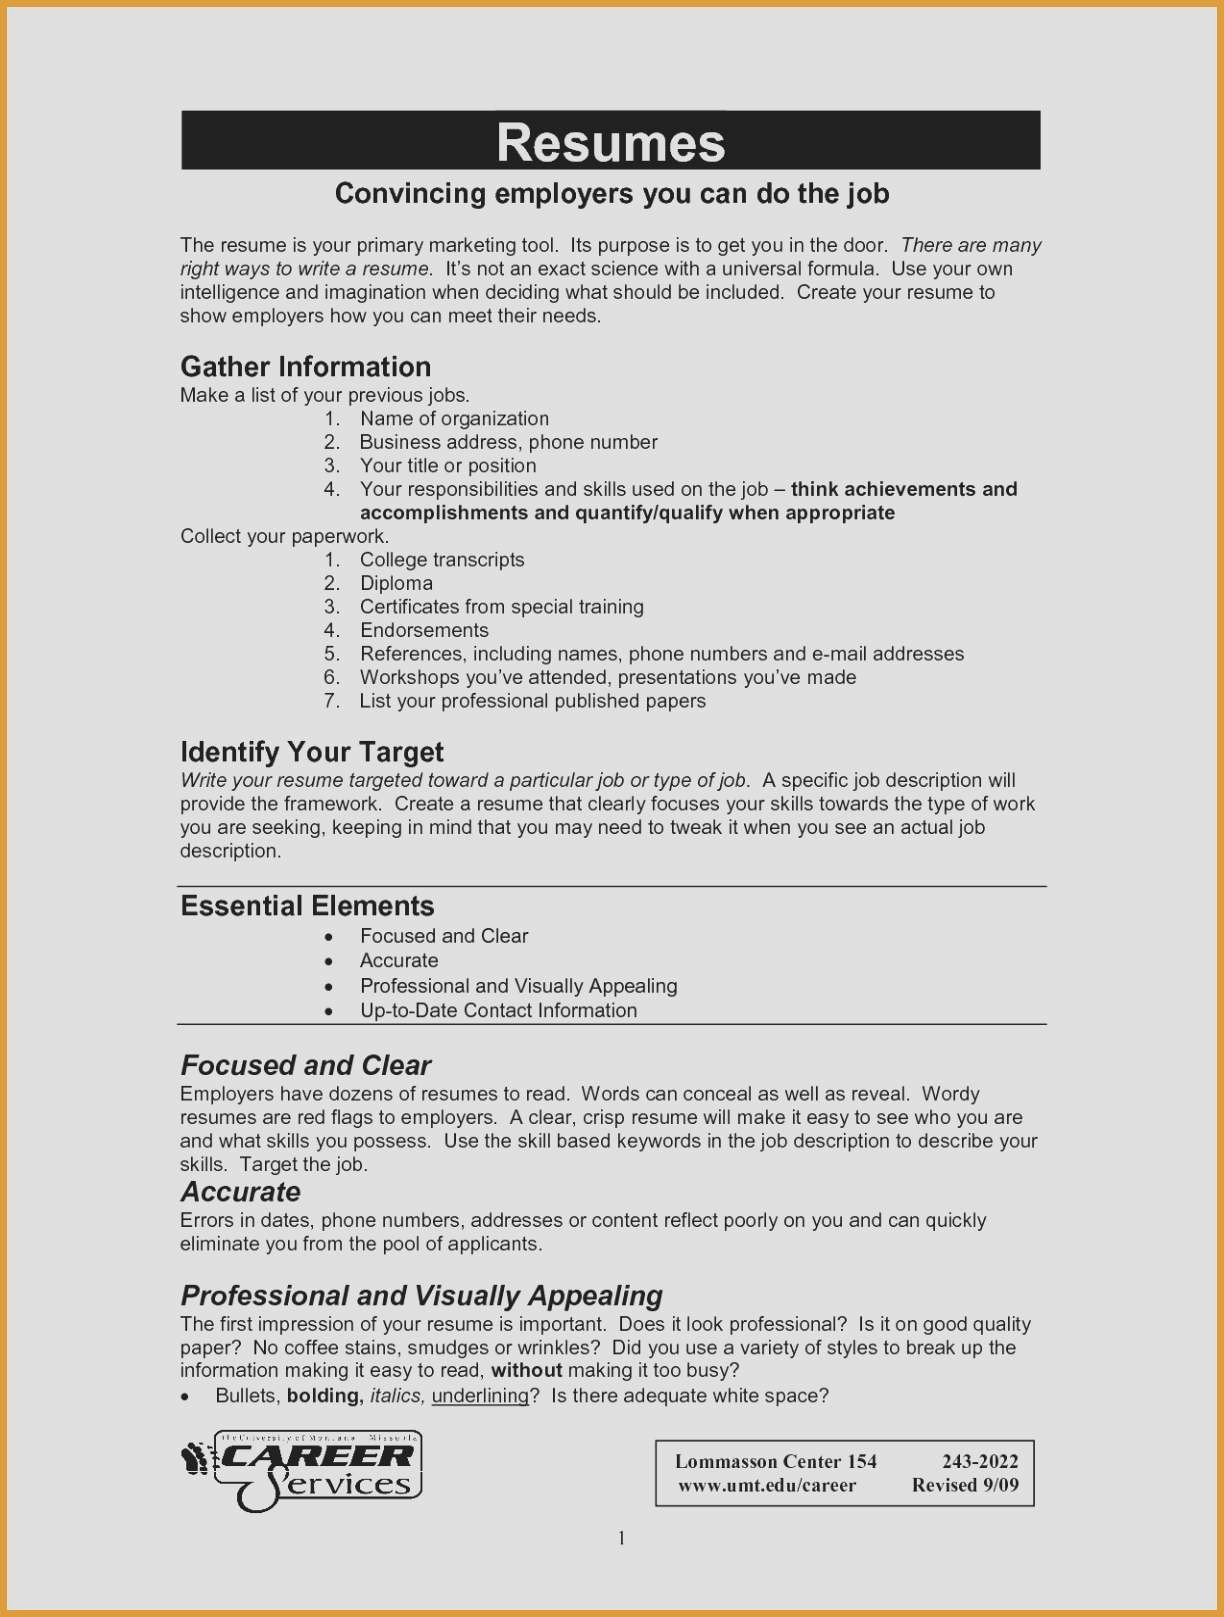 Visually Appealing Resume - Visually Appealing Resume Wp Landingpages